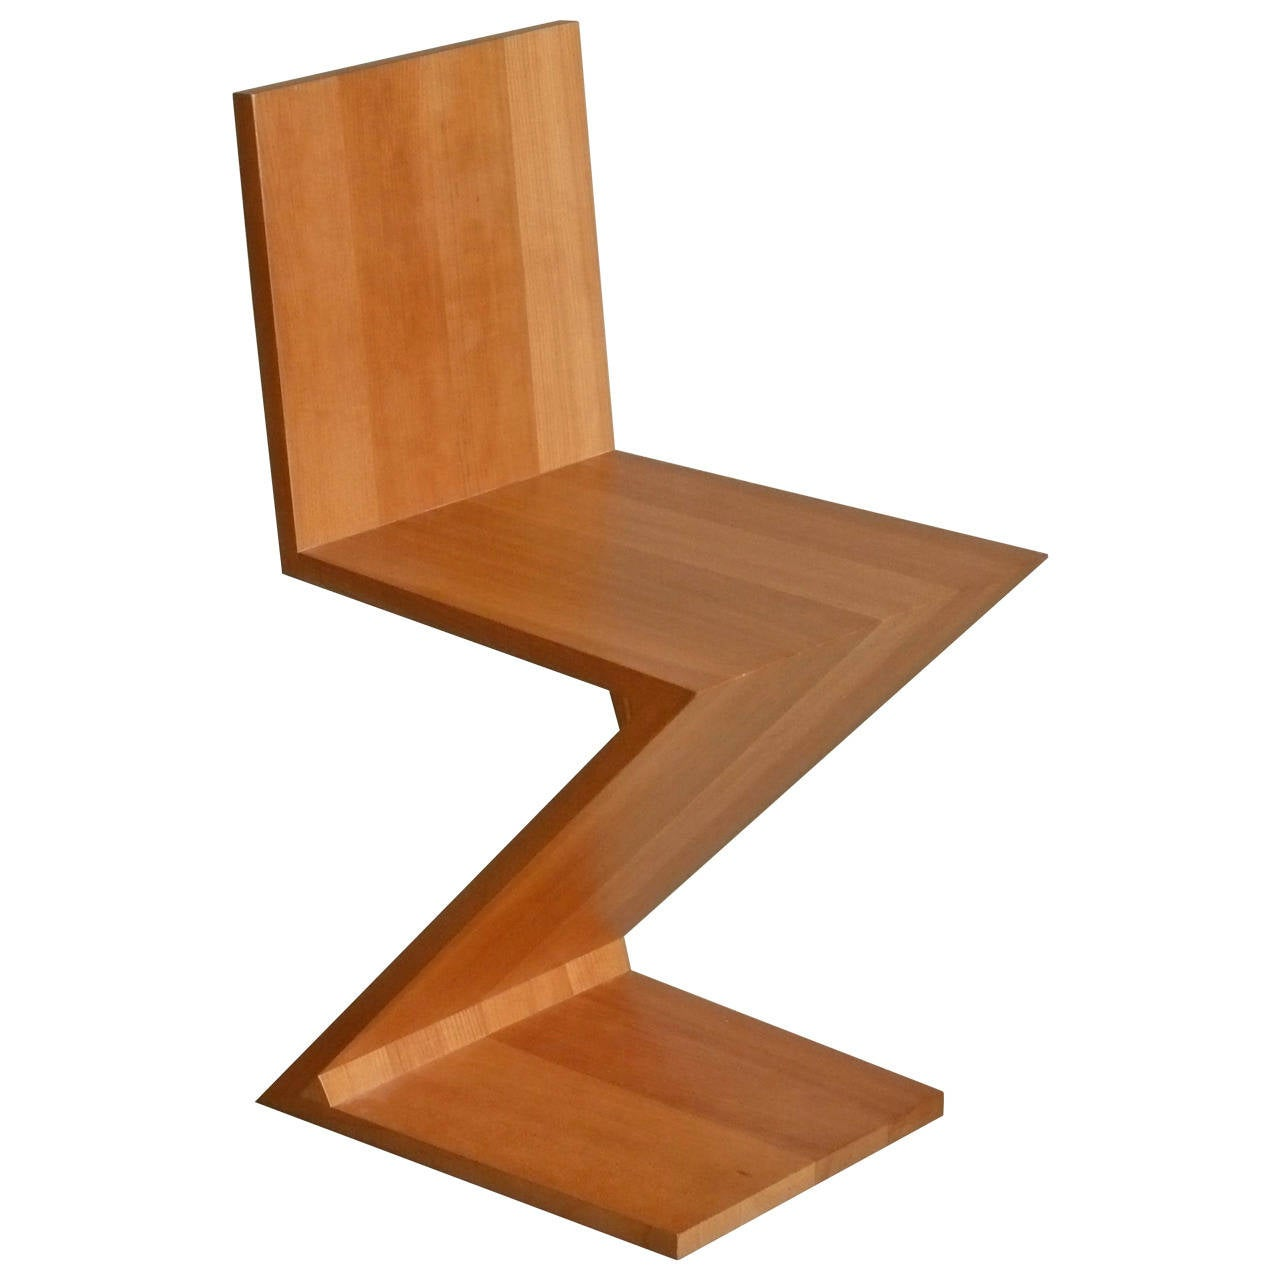 Zig Zag Chair in Cherry by Gerrit Rietveld at 1stdibs